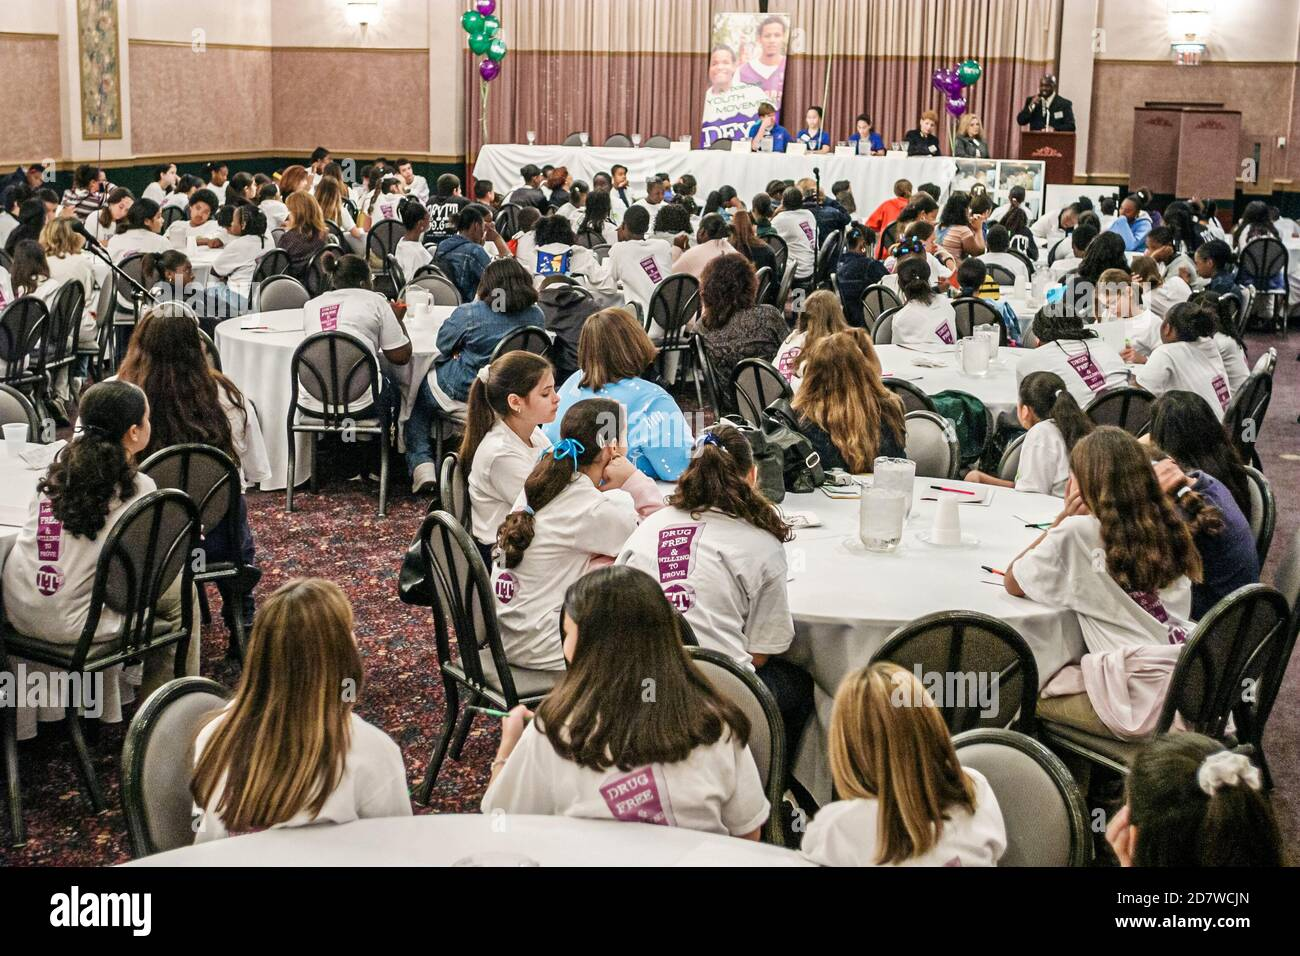 Florida Miami Kendall Drug Free Youth in Town DFYIT, Youth club Summit anti addiction organisation à but non lucratif, adolescents, adolescents adolescents adolescents adolescents étudiants Banque D'Images